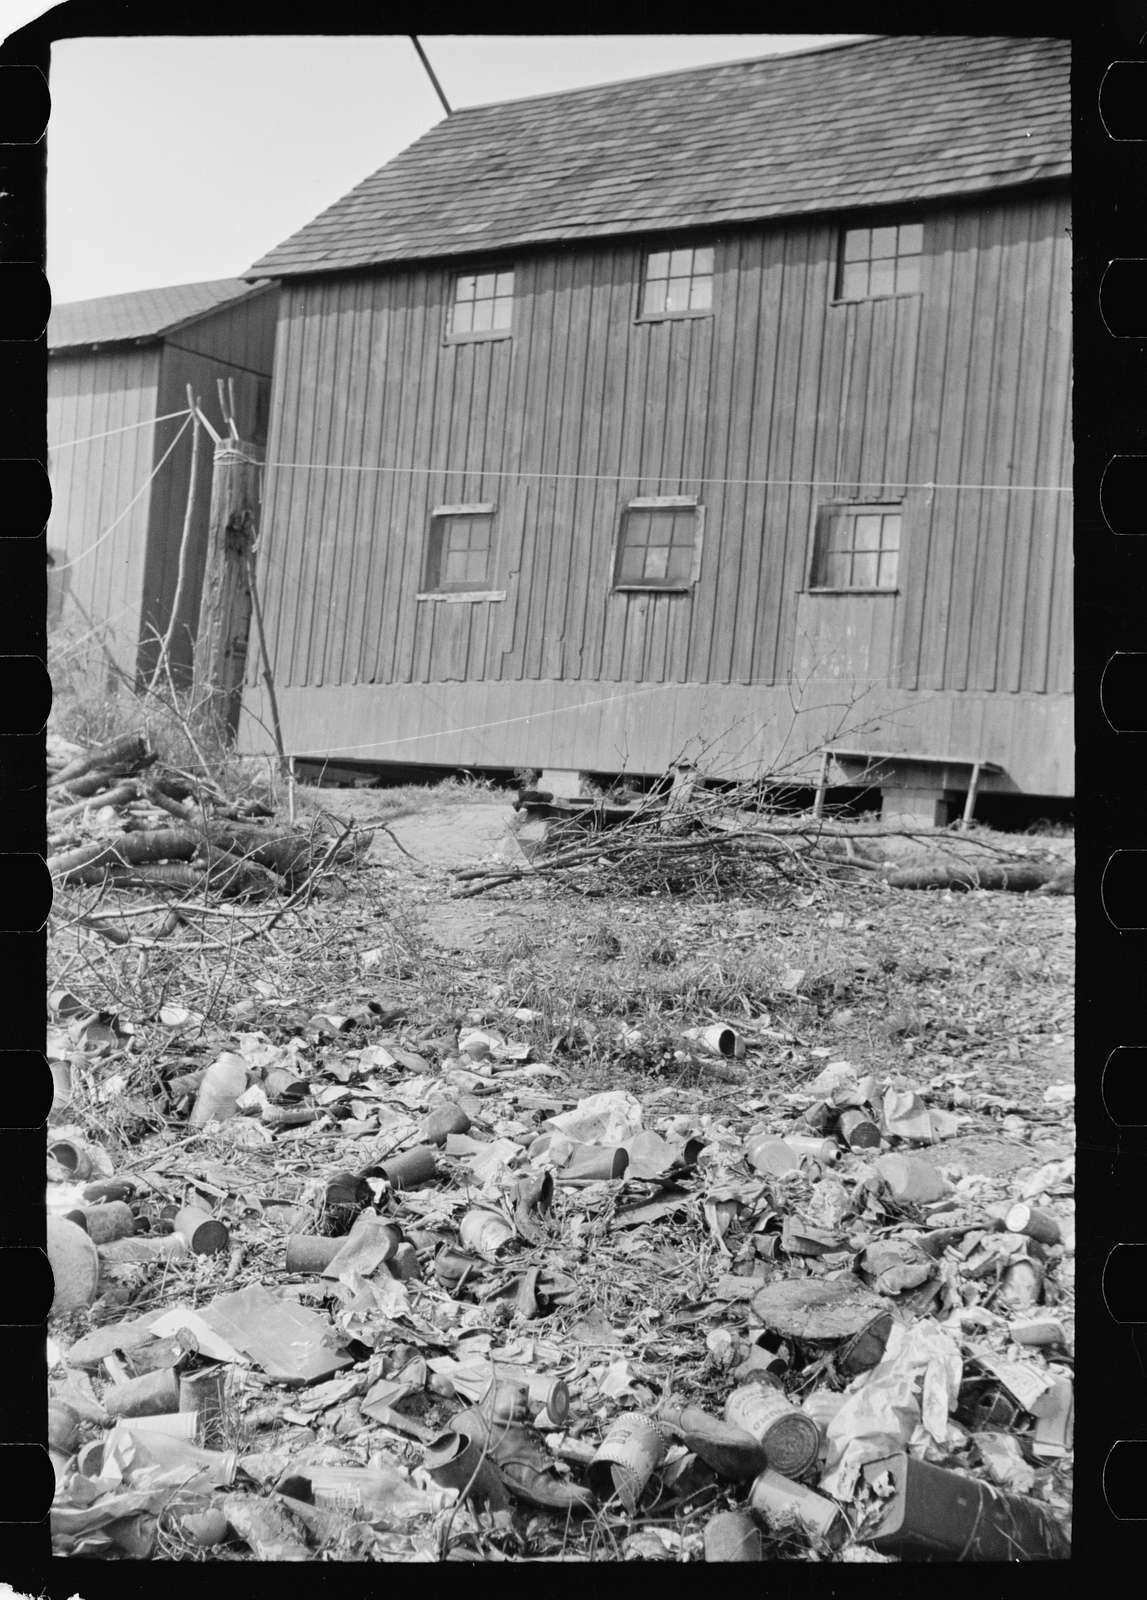 Untitled photo, possibly related to: Shack in which families of cranberry pickers are crowded together, Burlington County, New Jersey